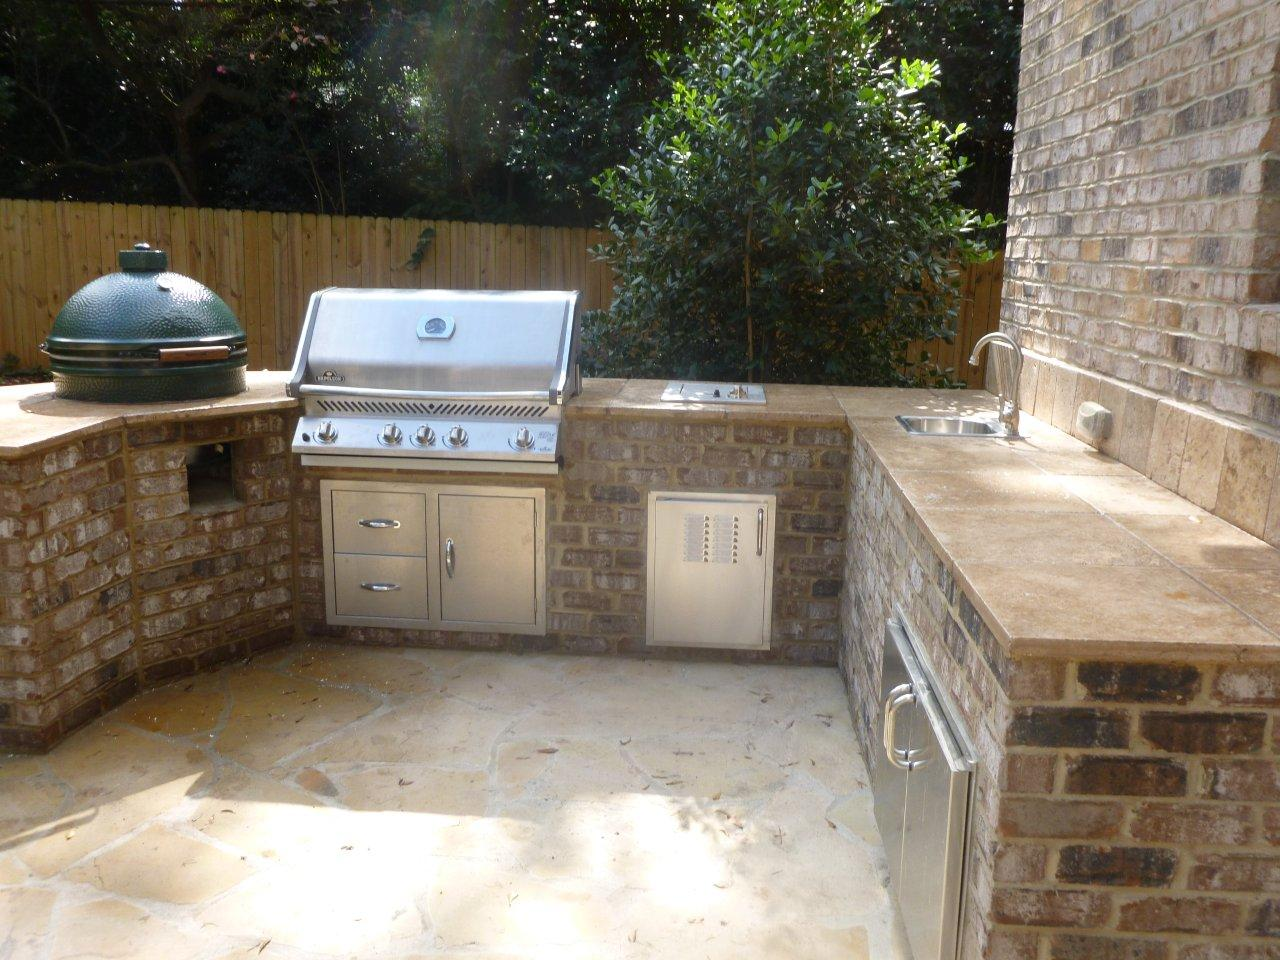 patio sink ideas kitchenoutdoor kitchen design wooden stackable cabinets granite countertops single faucet undermount sink outdoor - Patio Grill Ideas